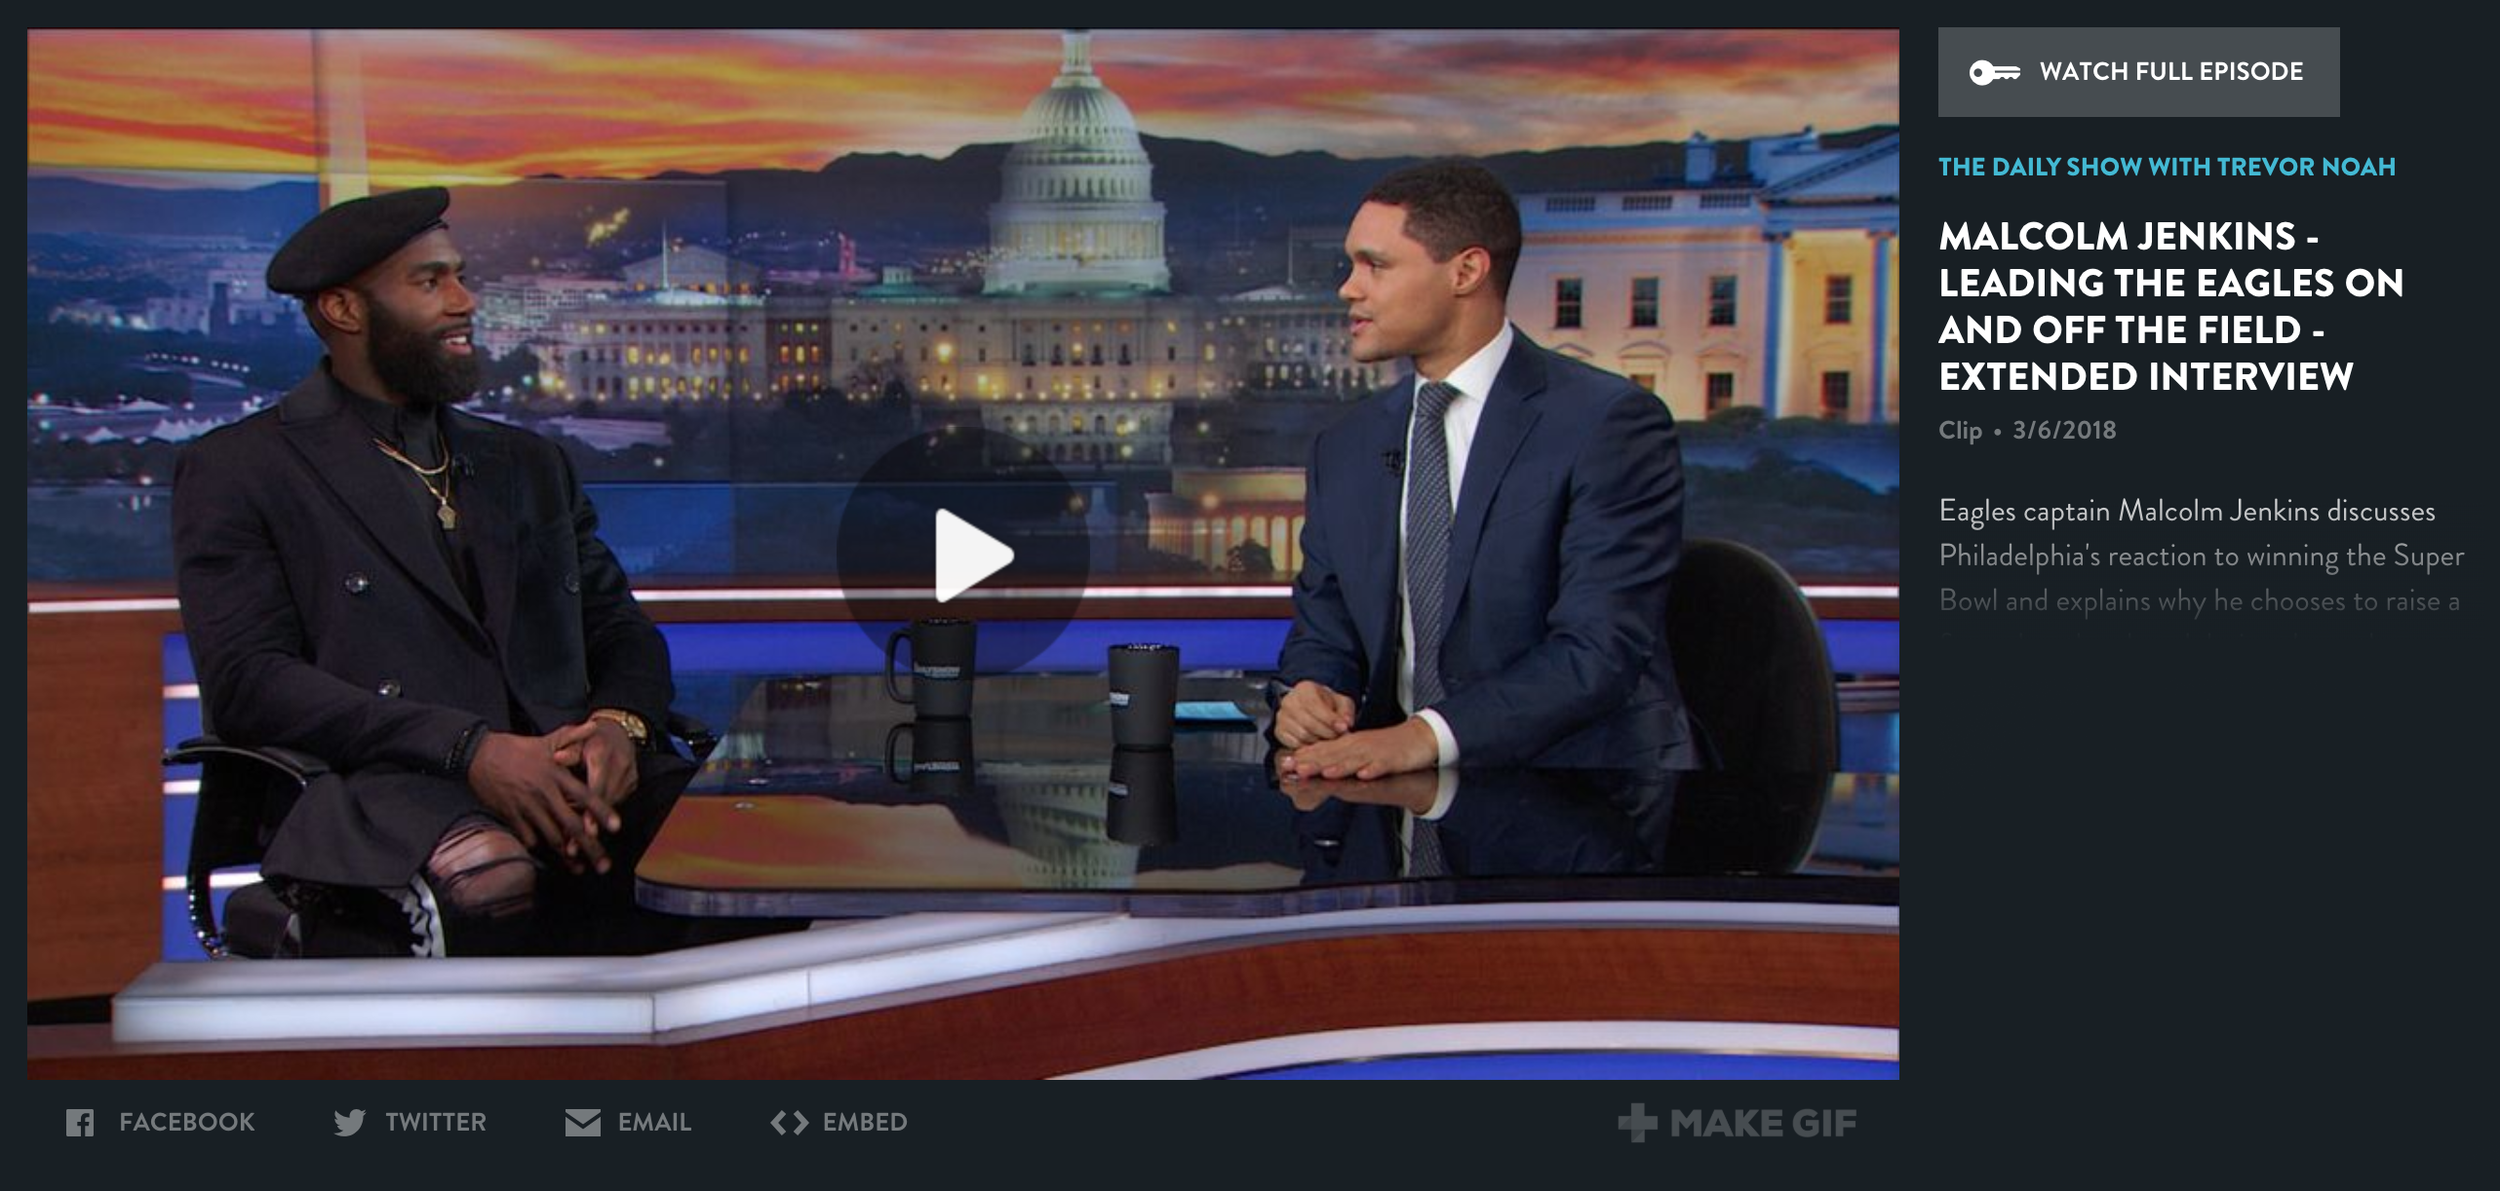 Trevor Noah Show - Eagles captain Malcolm Jenkins discusses Philadelphia's reaction to winning the Super Bowl and explains why he chooses to raise a fist rather than kneel during the anthem.